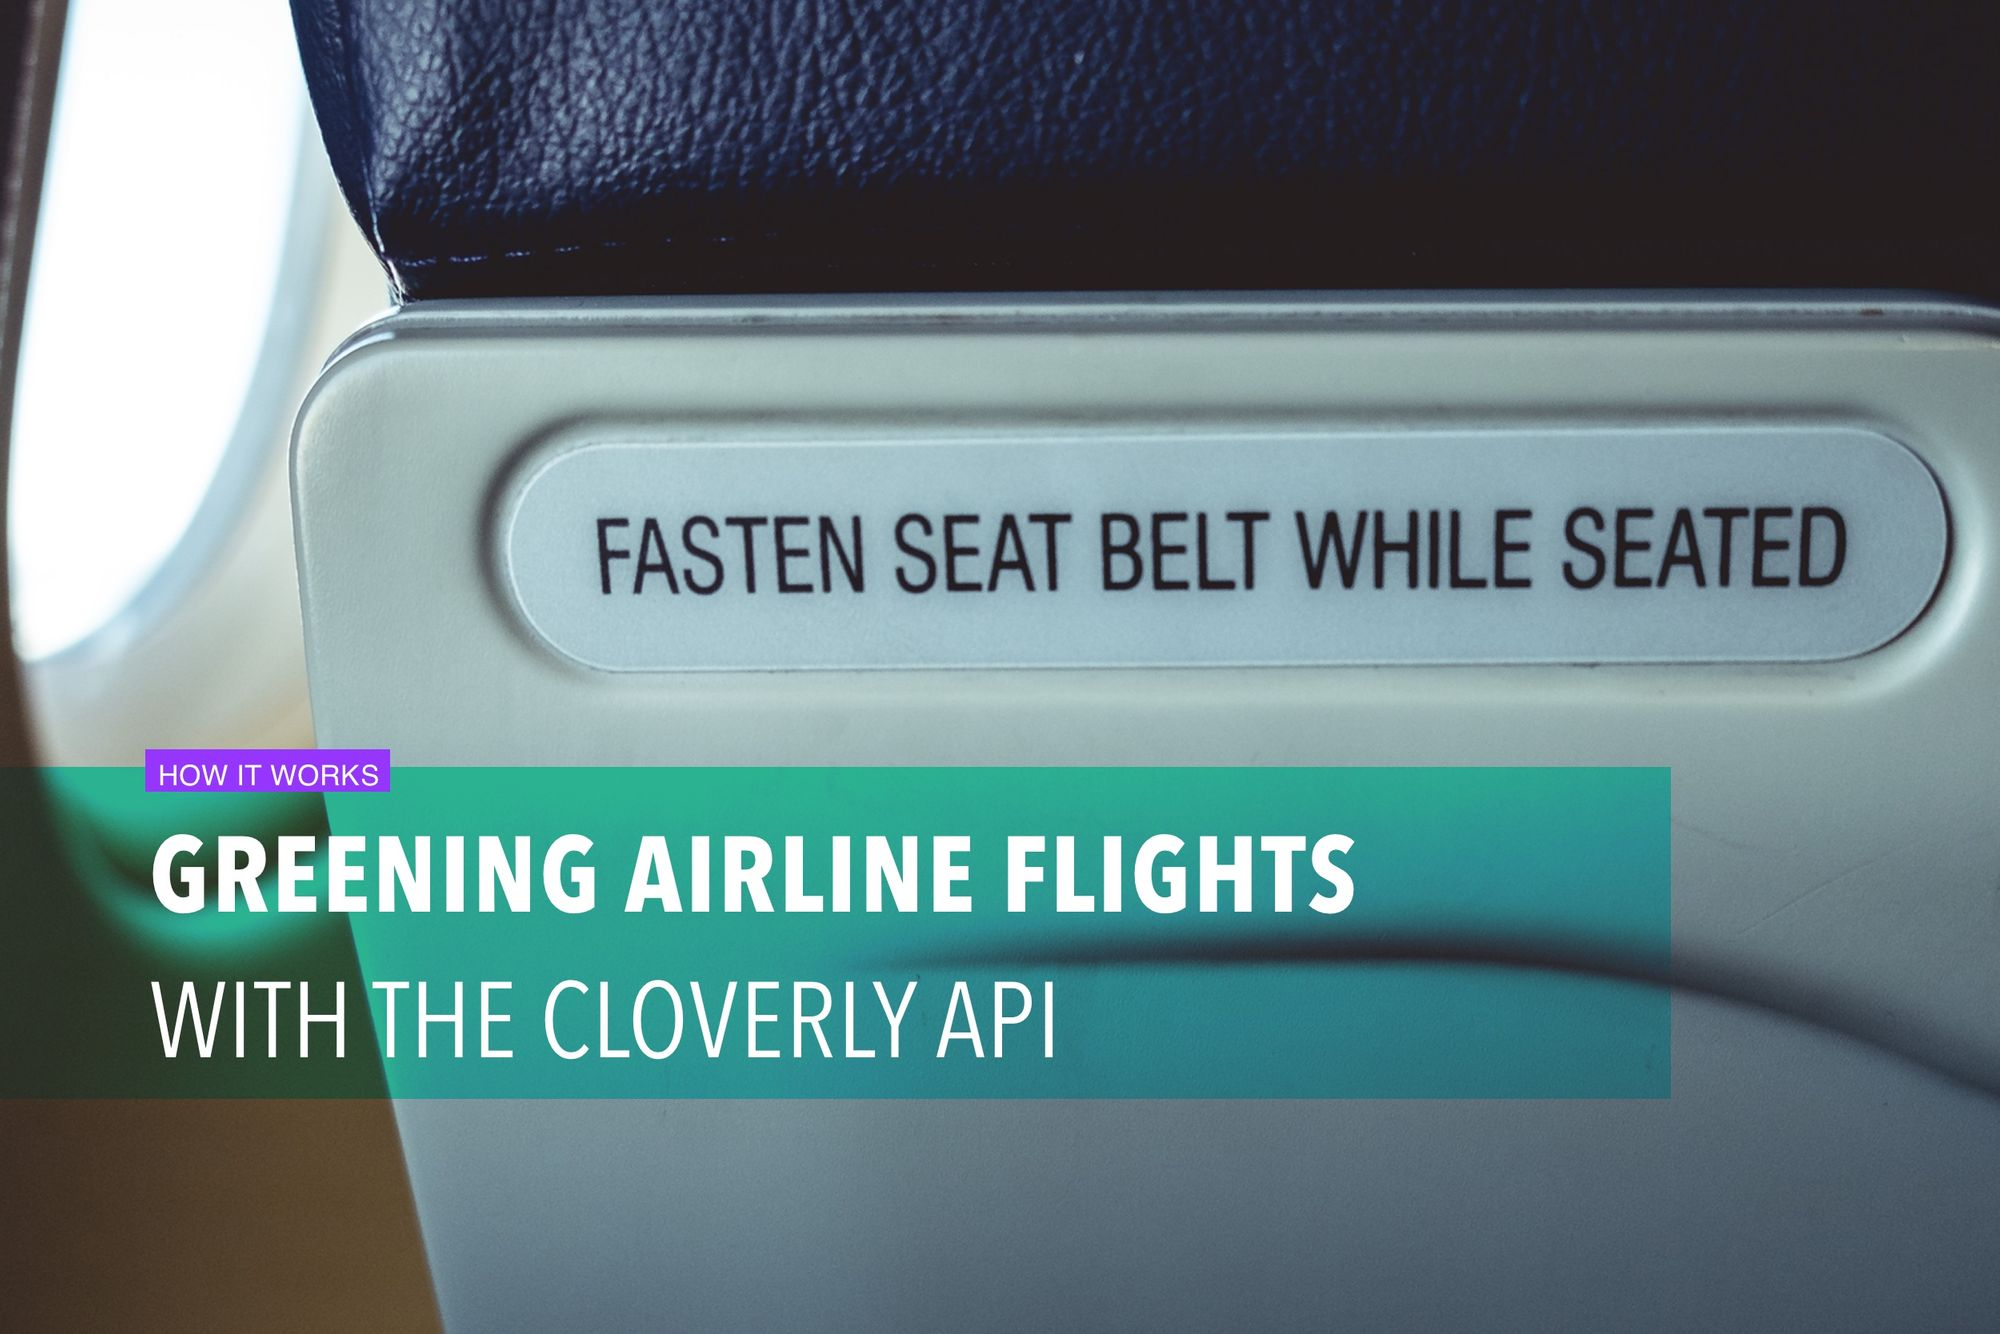 Greening airline flights with the Cloverly API